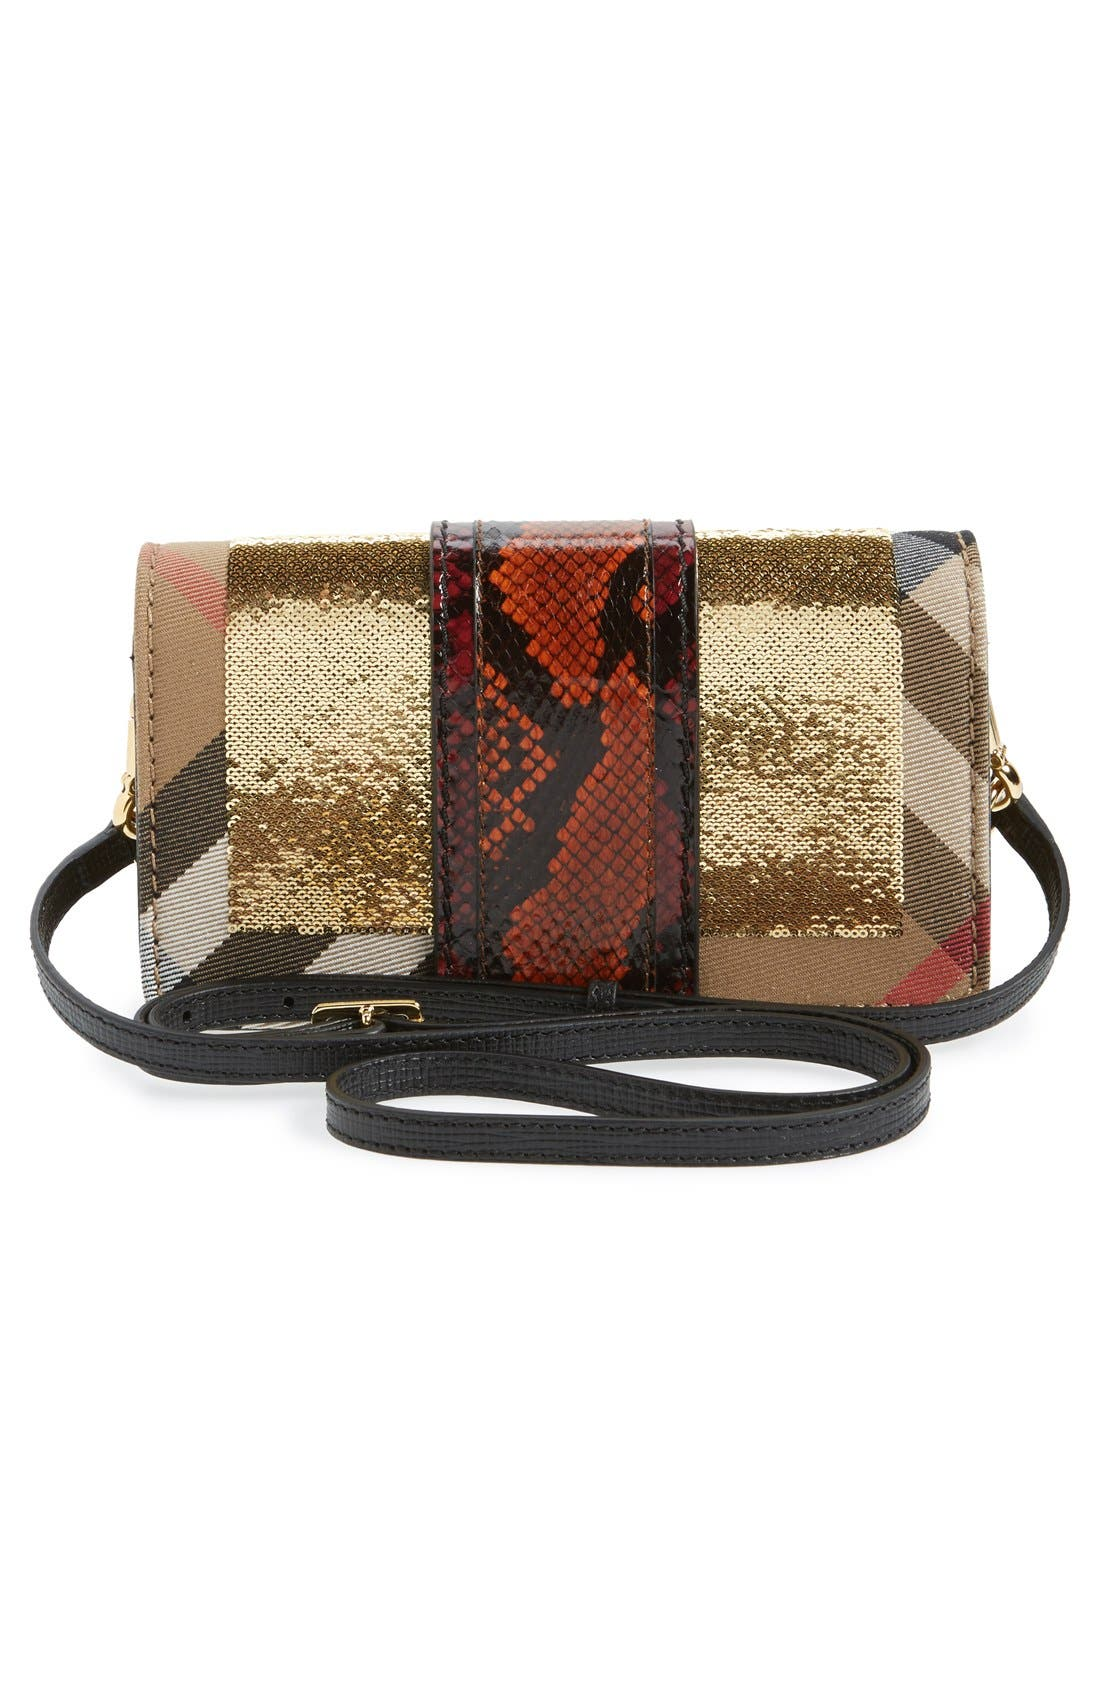 Alternate Image 3  - Burberry 'Belt Bag' Mixed Finish Convertible Clutch with Genuine Snakeskin Trim